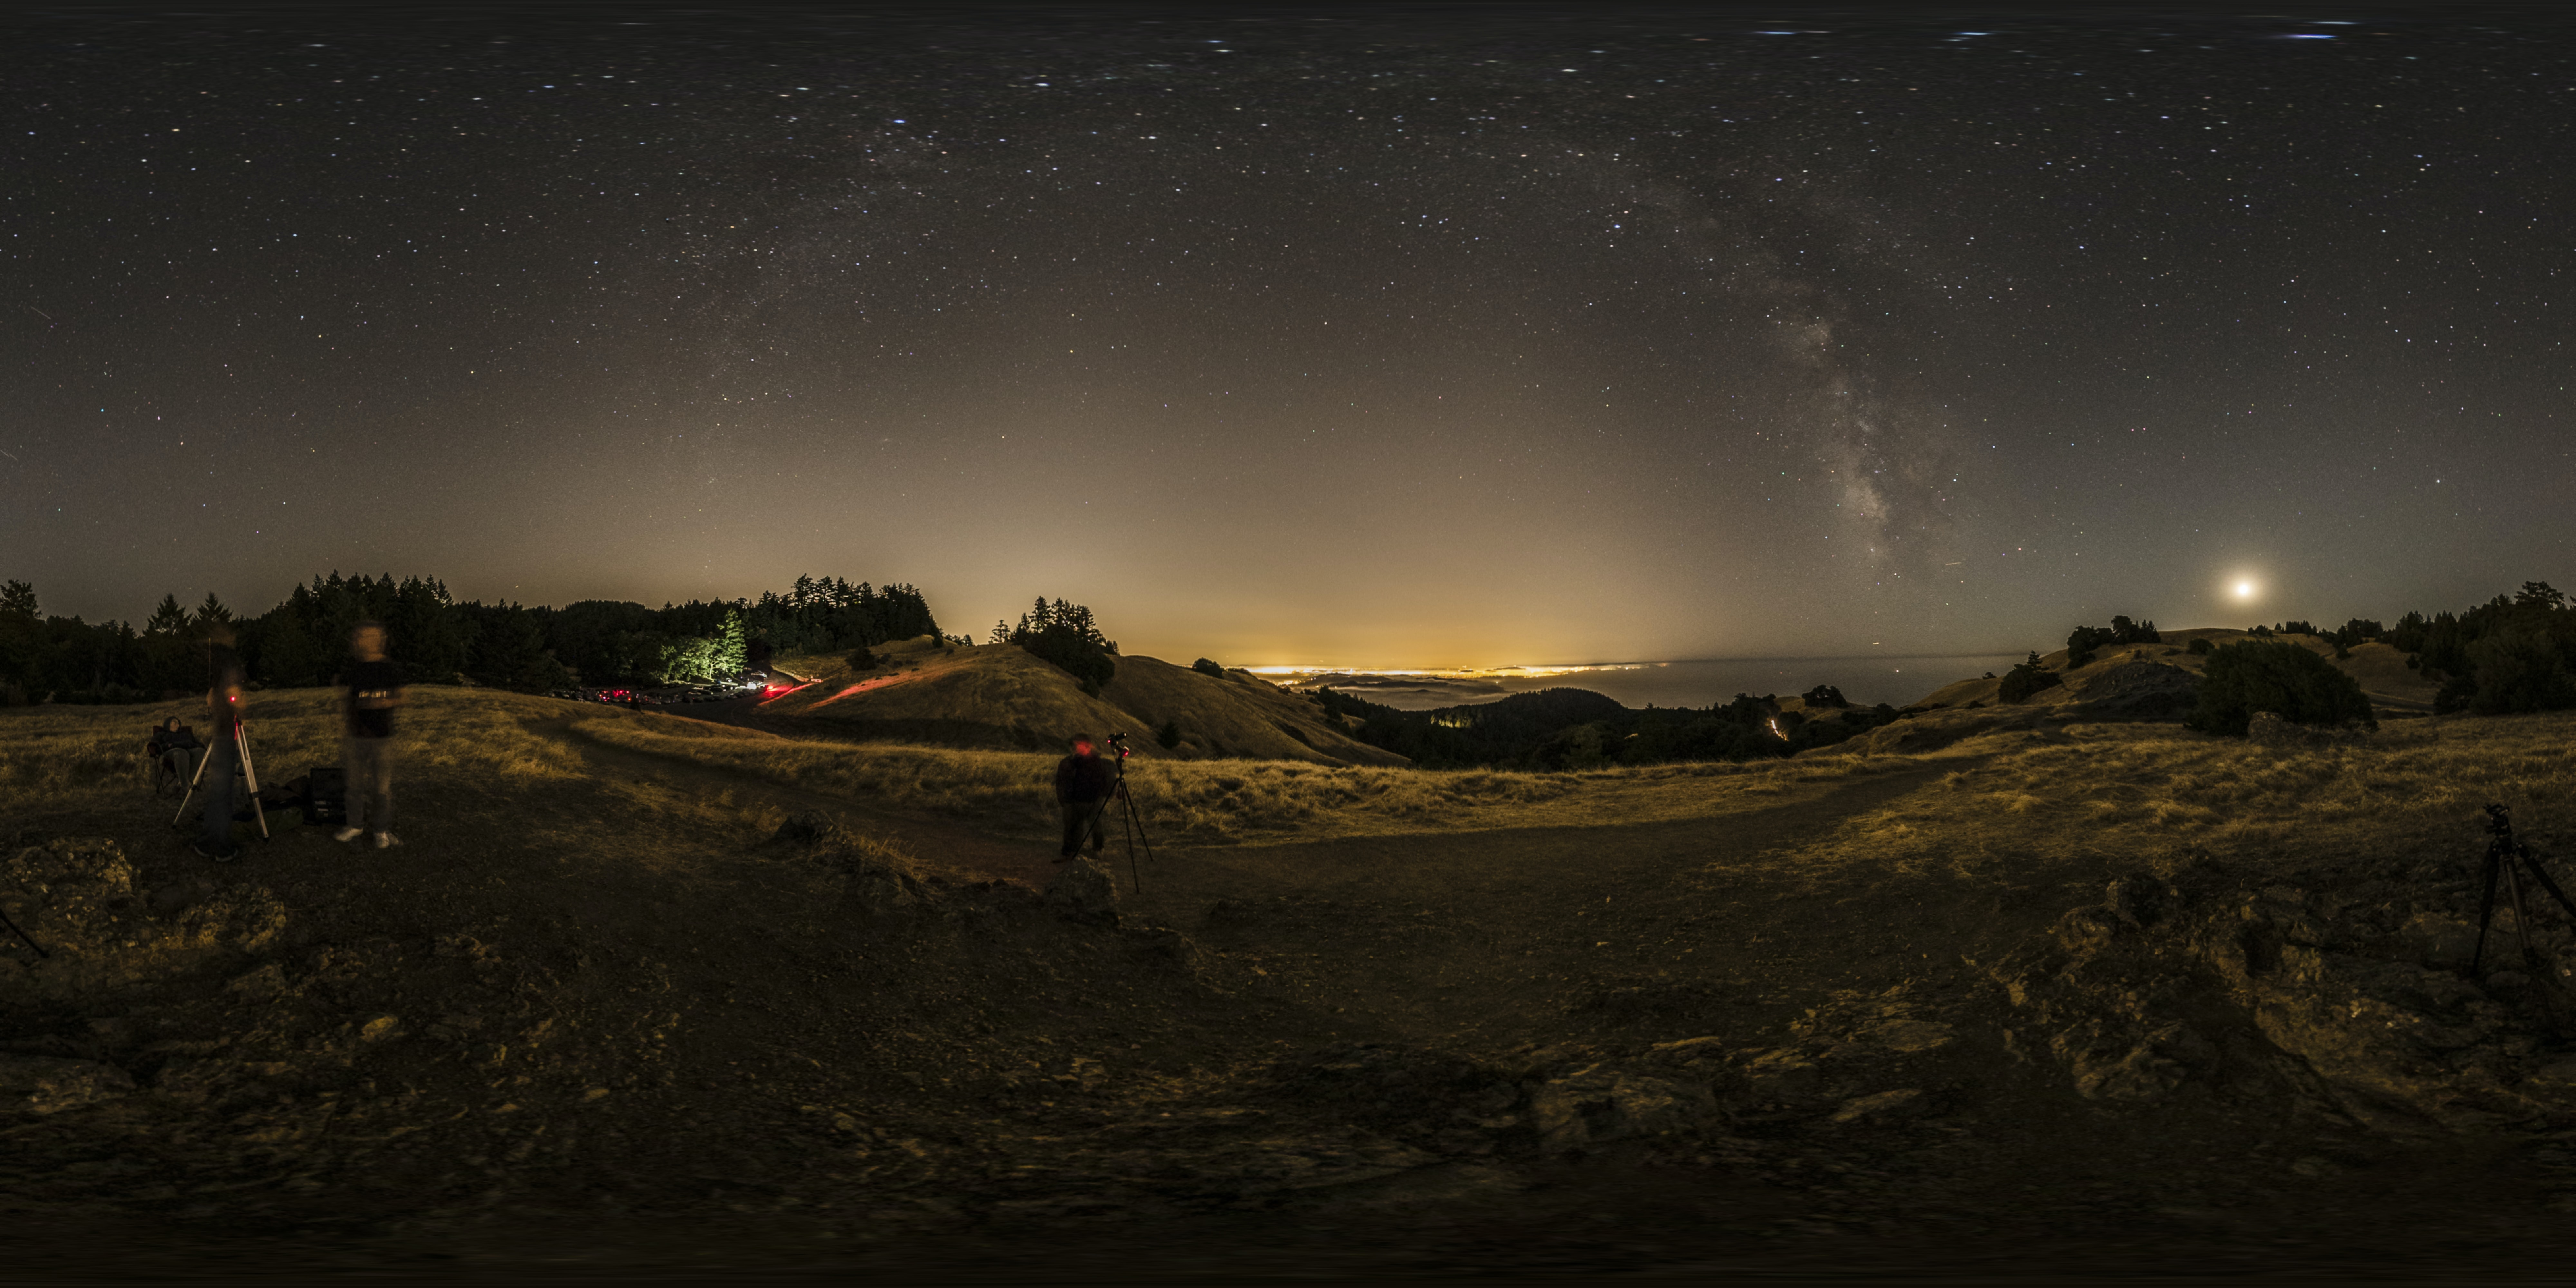 landscape photography of people camping on open area under gray sky at night time